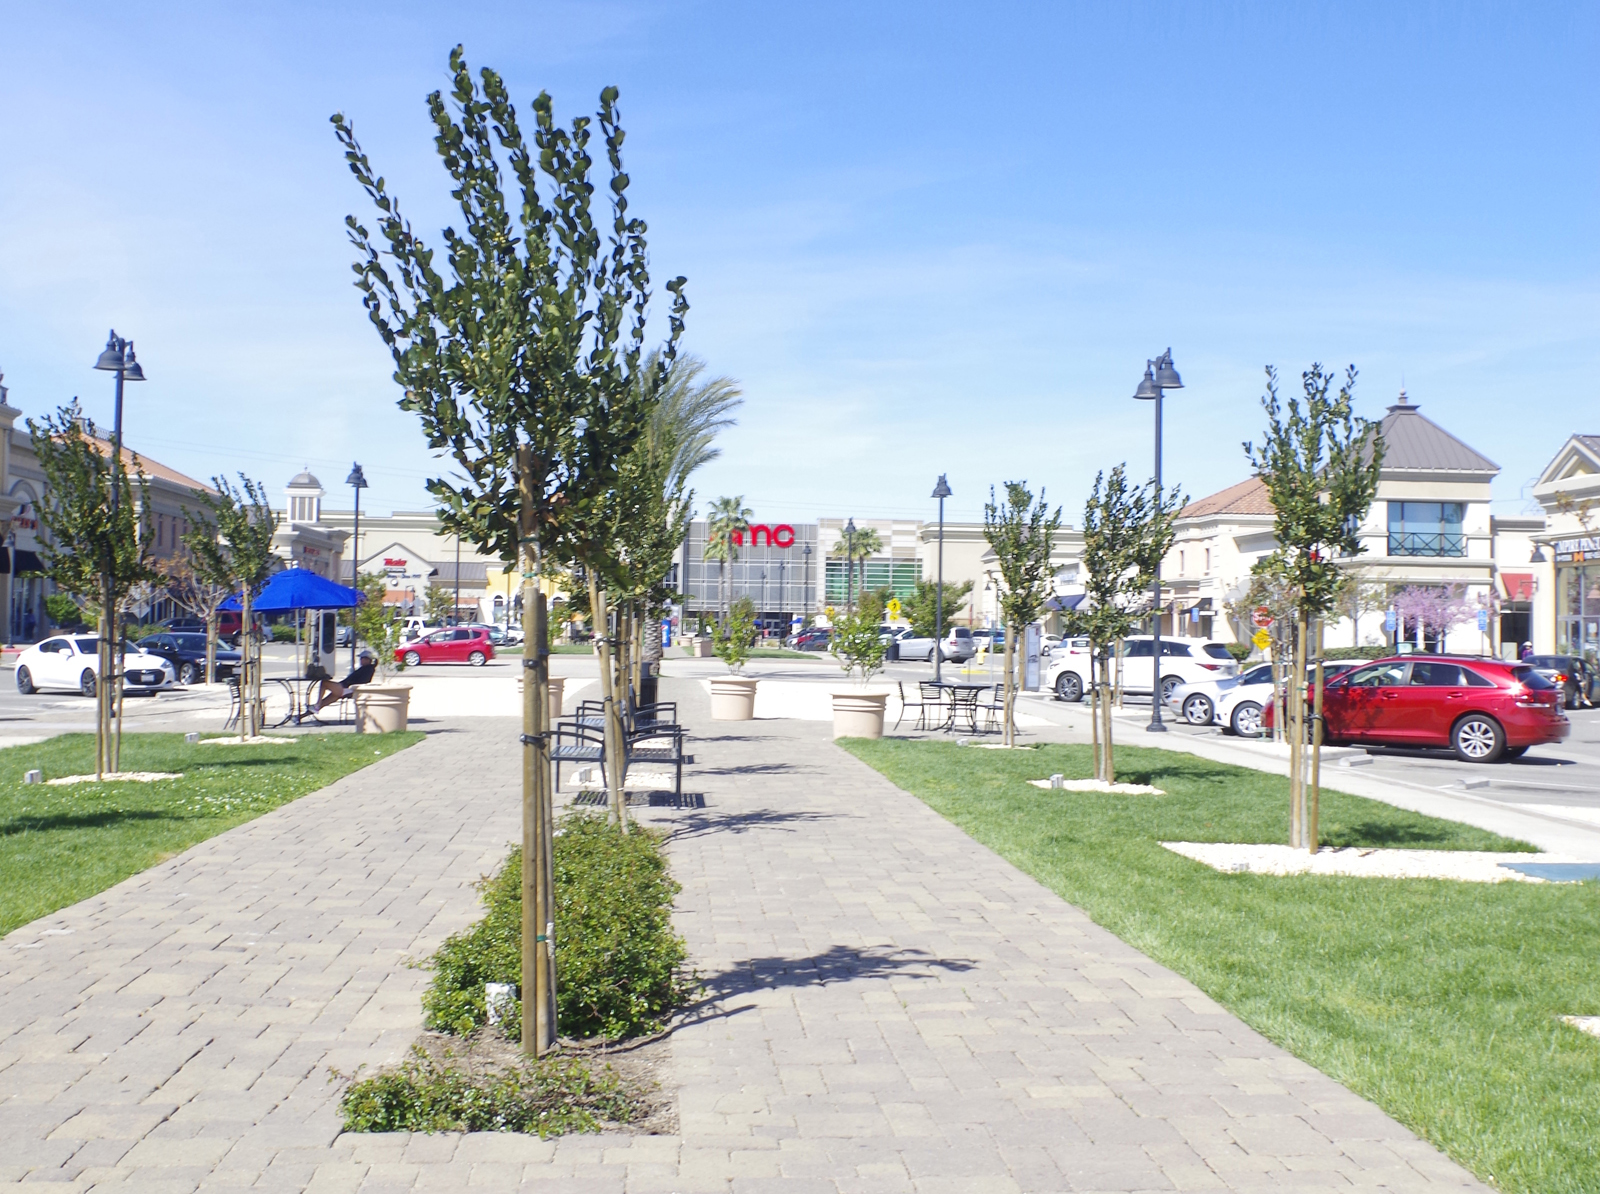 Streets of Brentwood Plaza